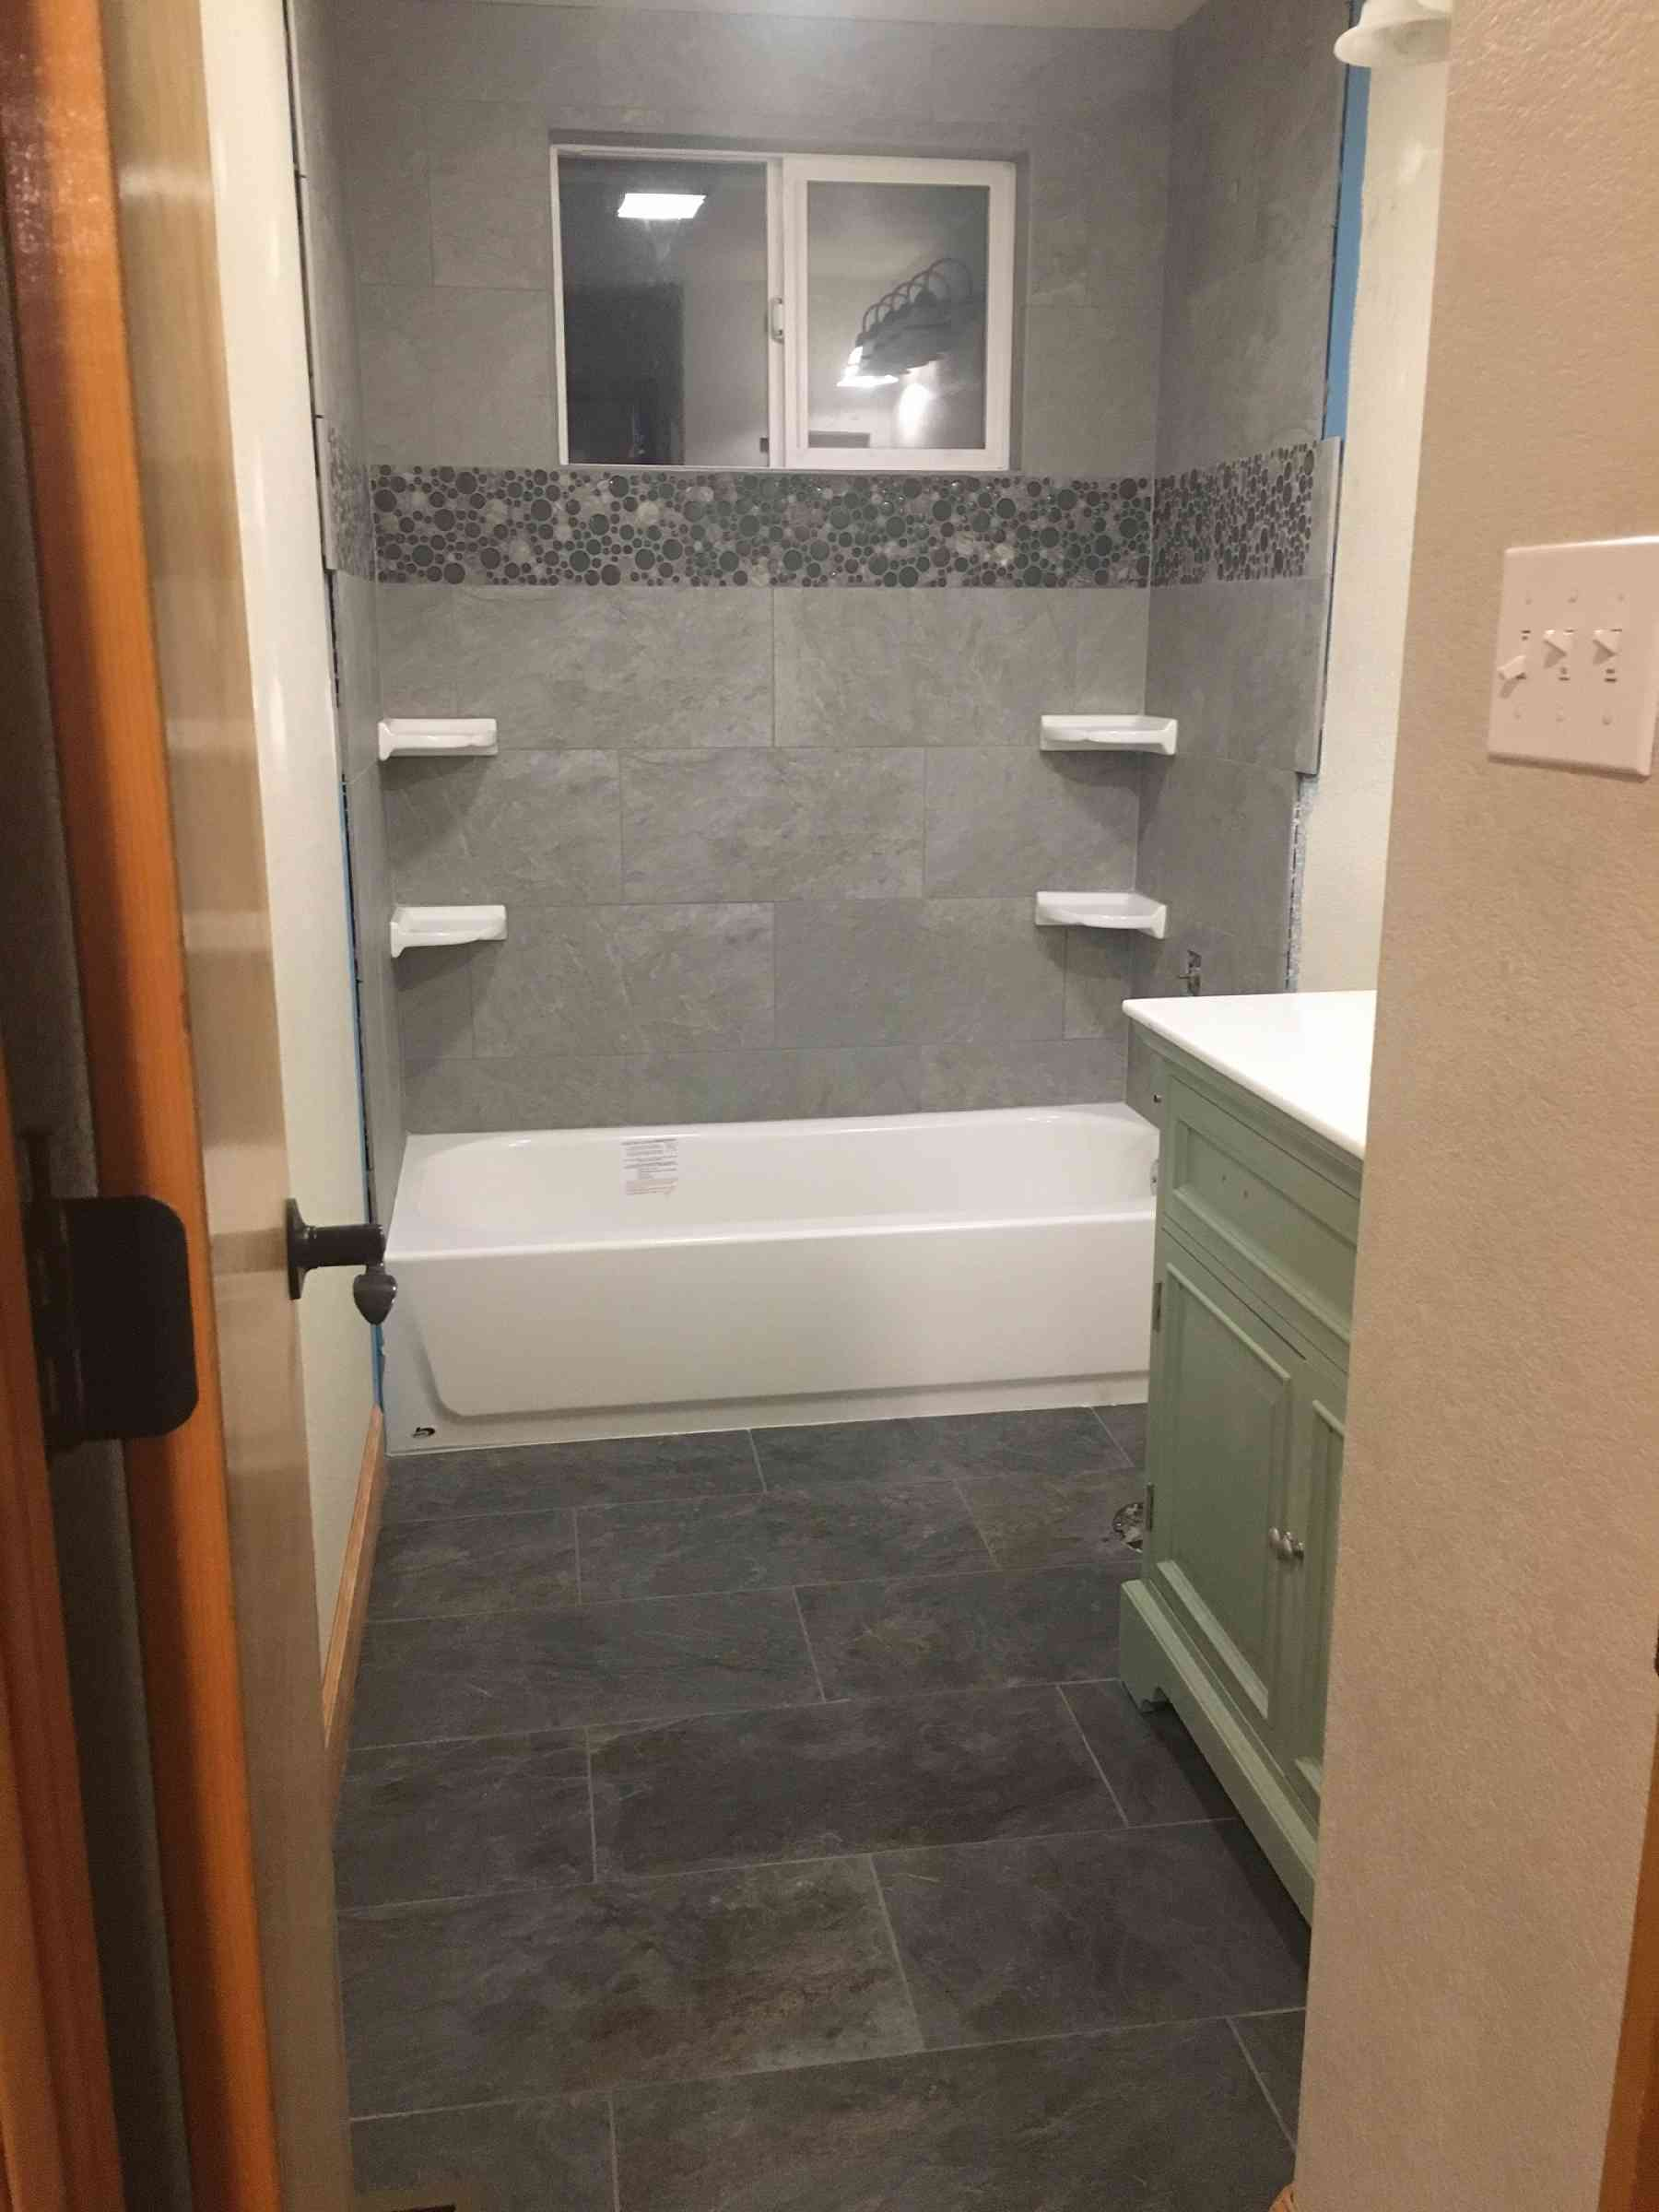 New shower and floor tile